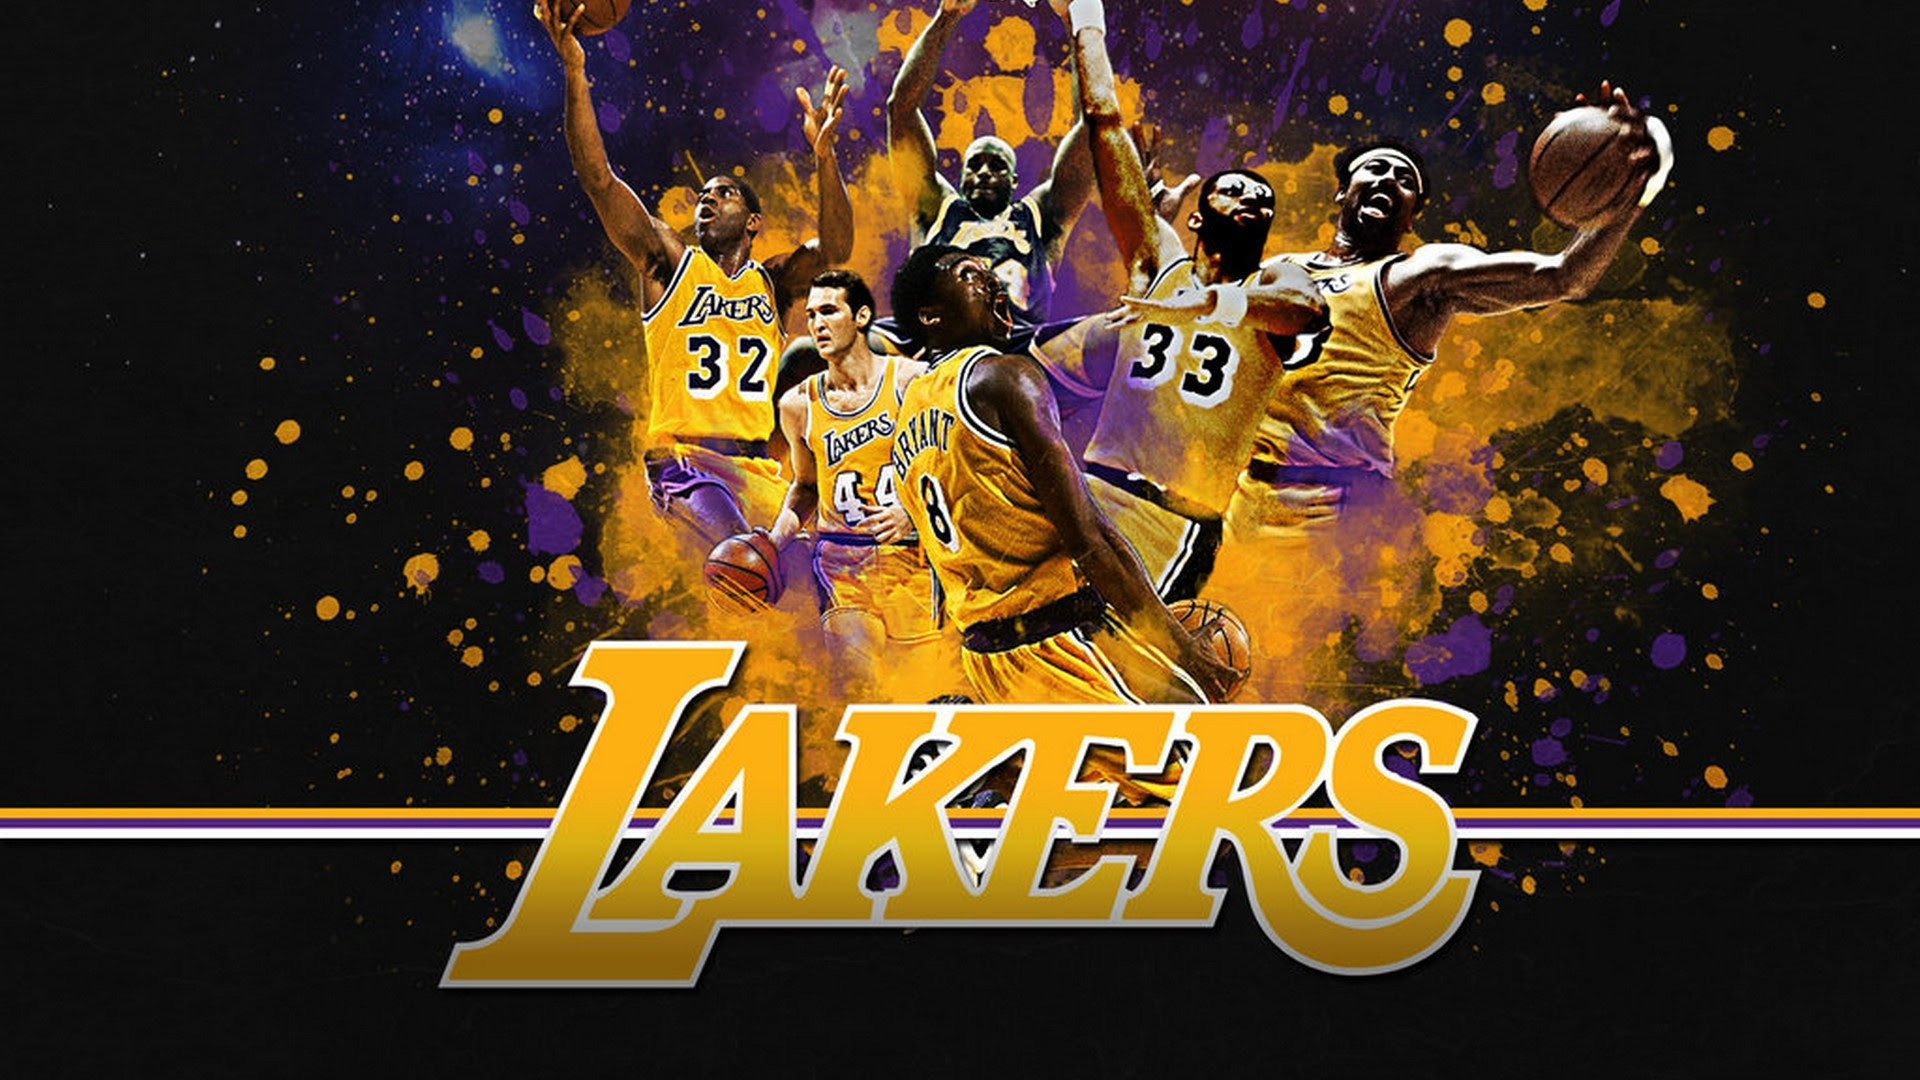 HD Backgrounds Los Angeles Lakers | 2019 Basketball Wallpaper